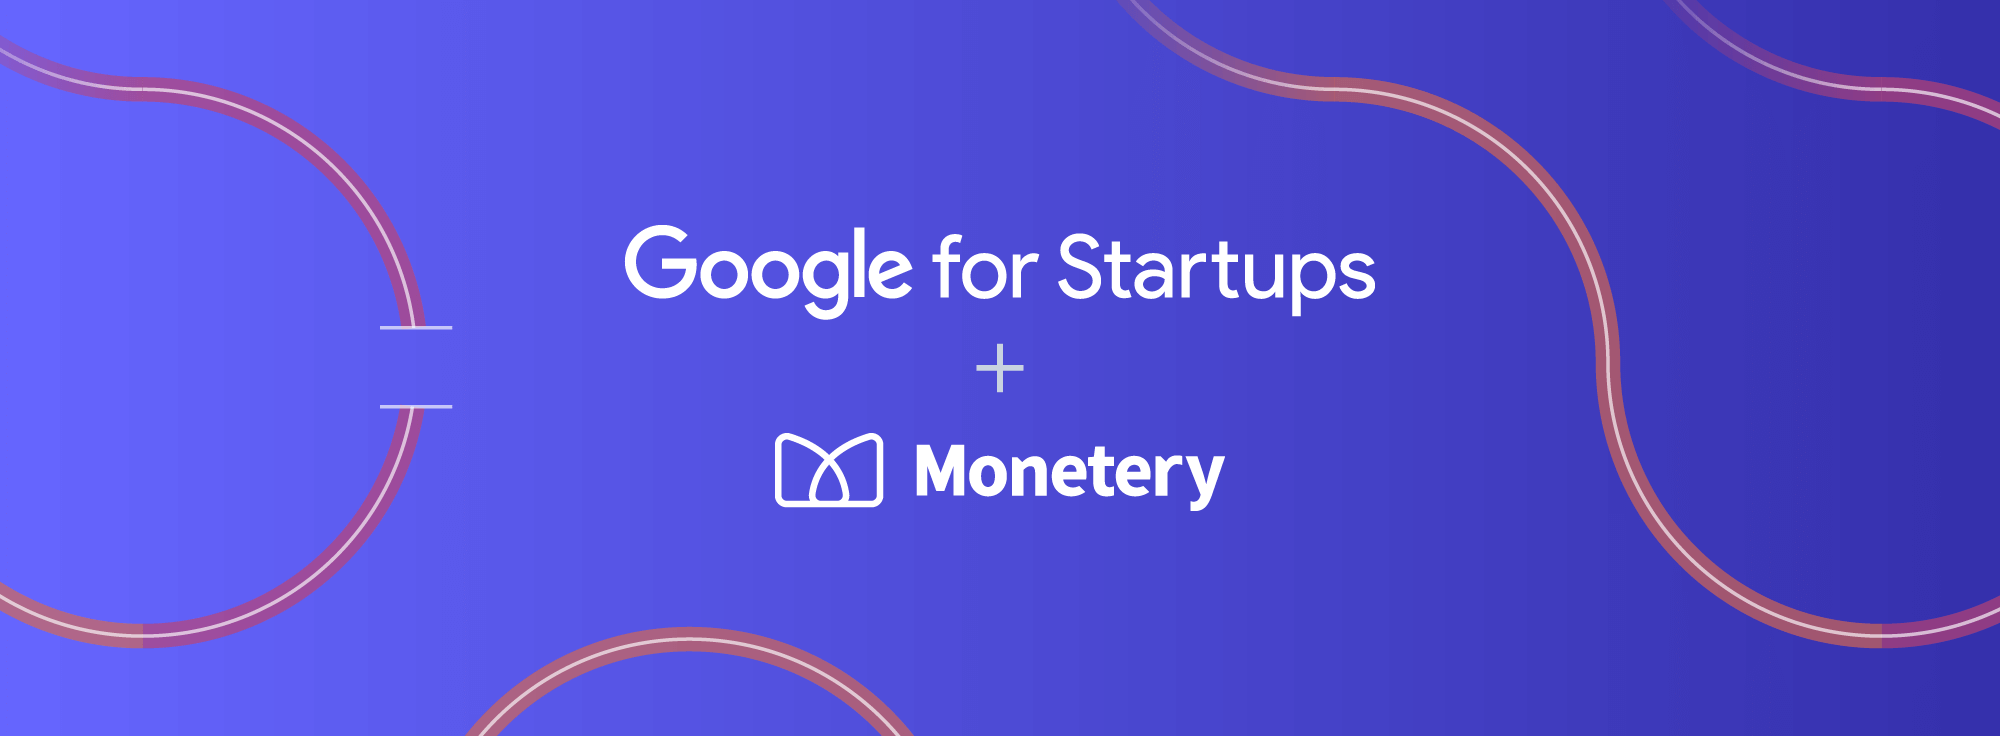 google for startups sponsors monetery